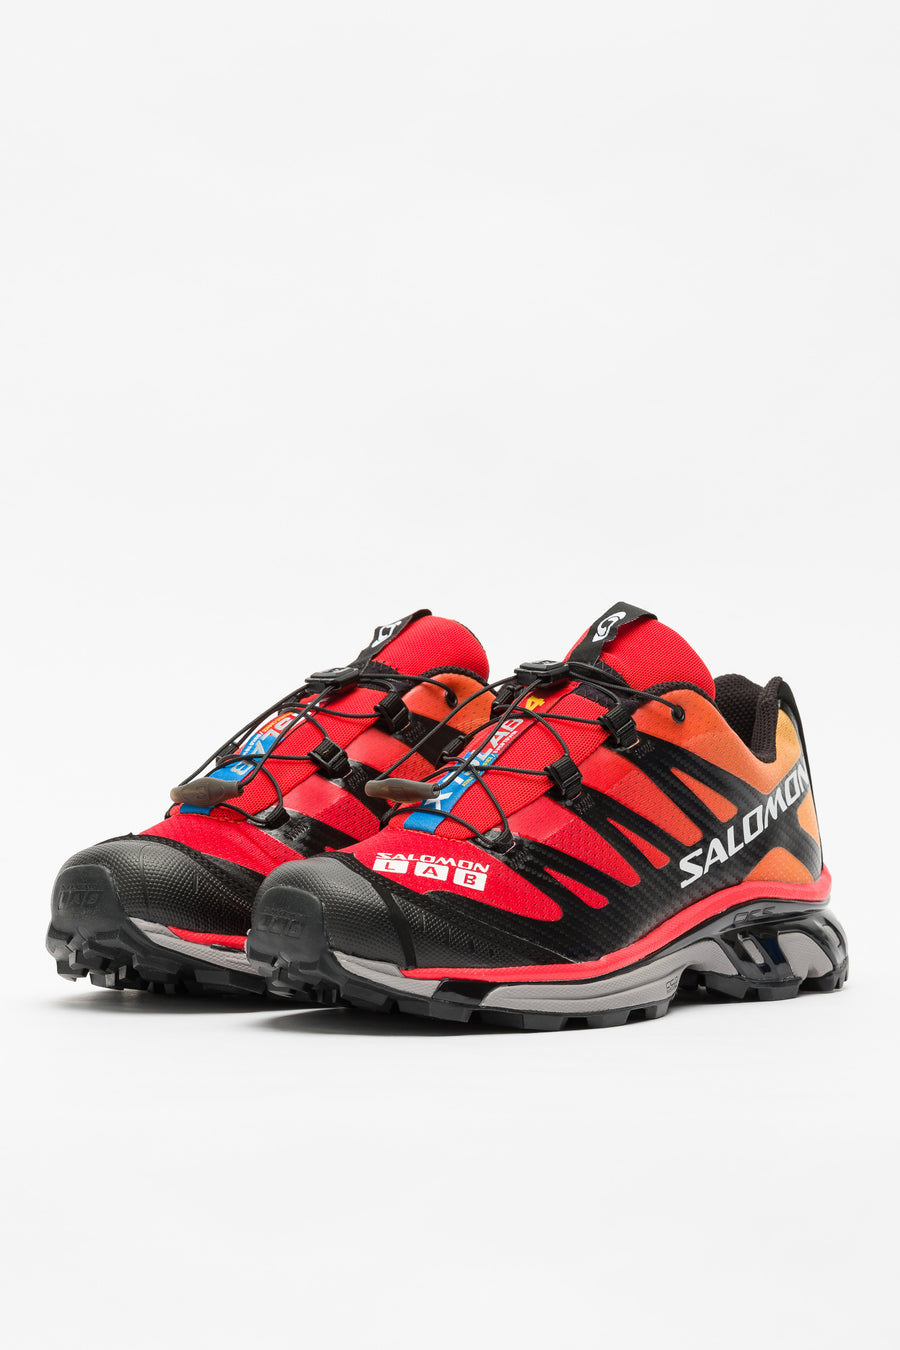 SALOMON S/LAB XT-4 ADV in Red/Yellow/Black - Notre